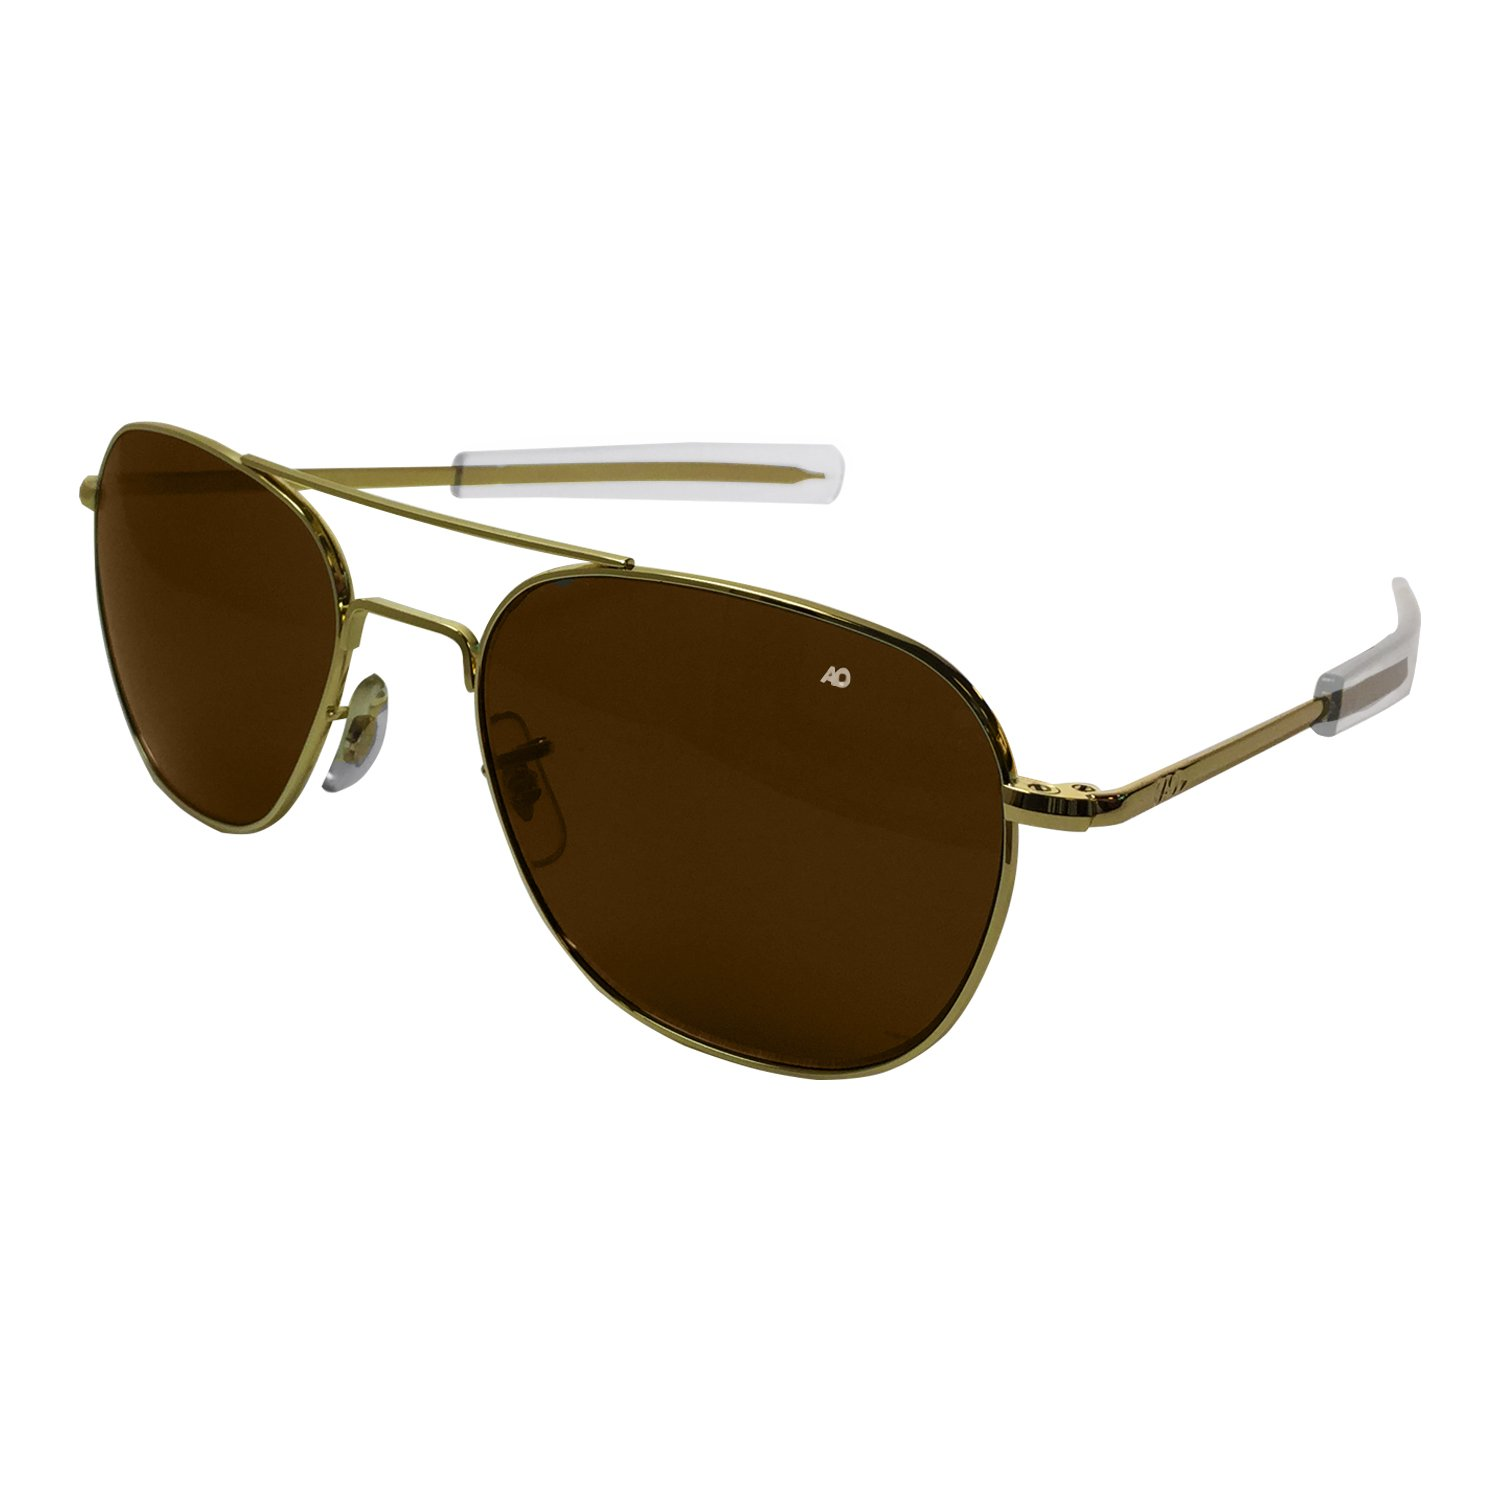 AO Eyewear American Optical - Original Pilot Aviator Sunglasses with Bayonet Temple and Gold Frame, Cosmetan Brown Glass Polarized Lens